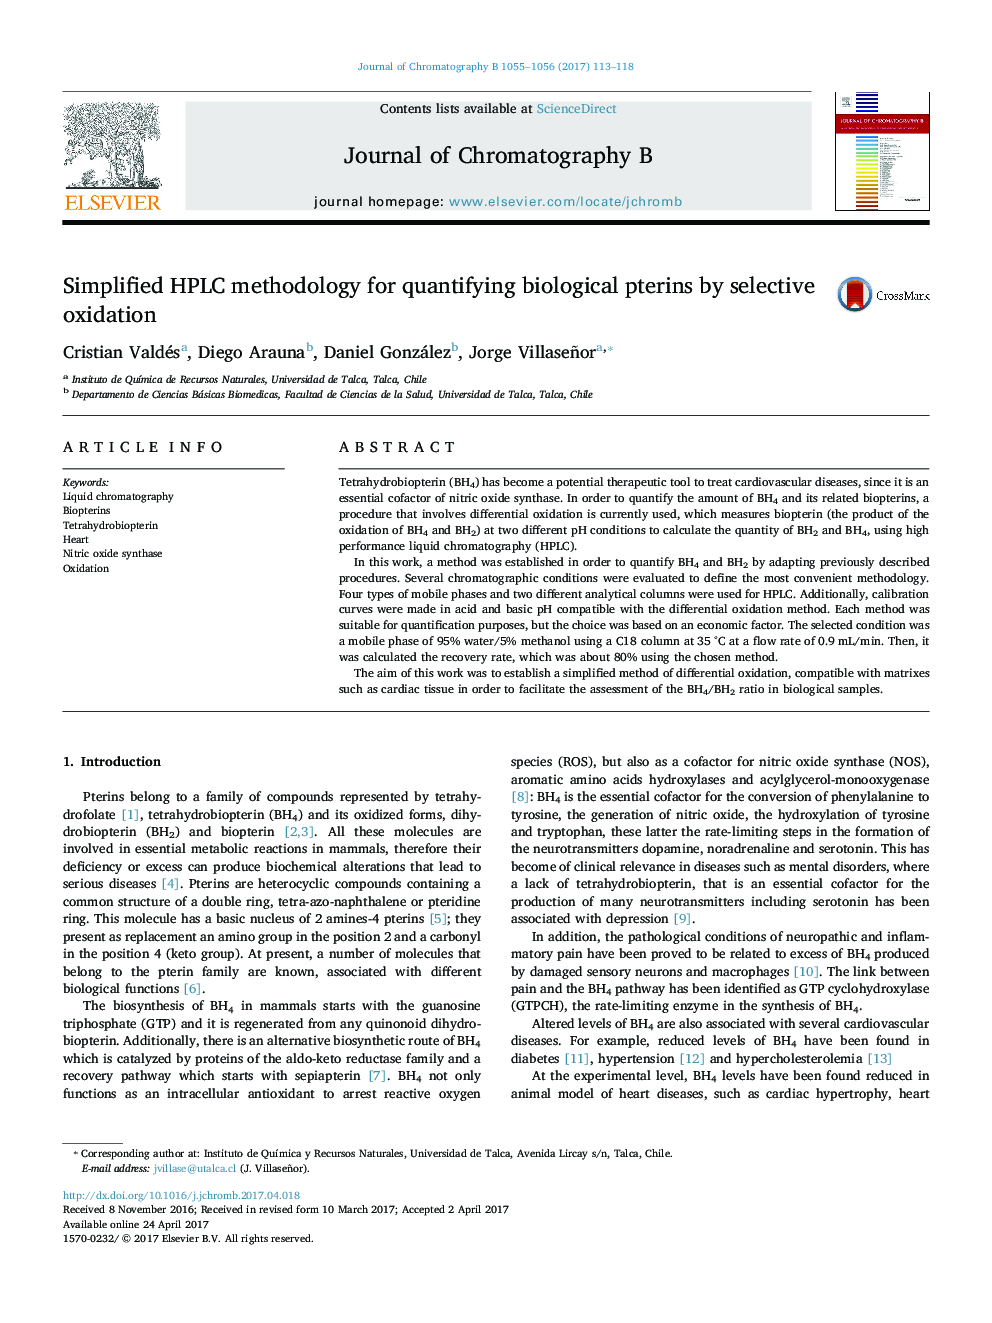 Simplified HPLC methodology for quantifying biological pterins by selective oxidation